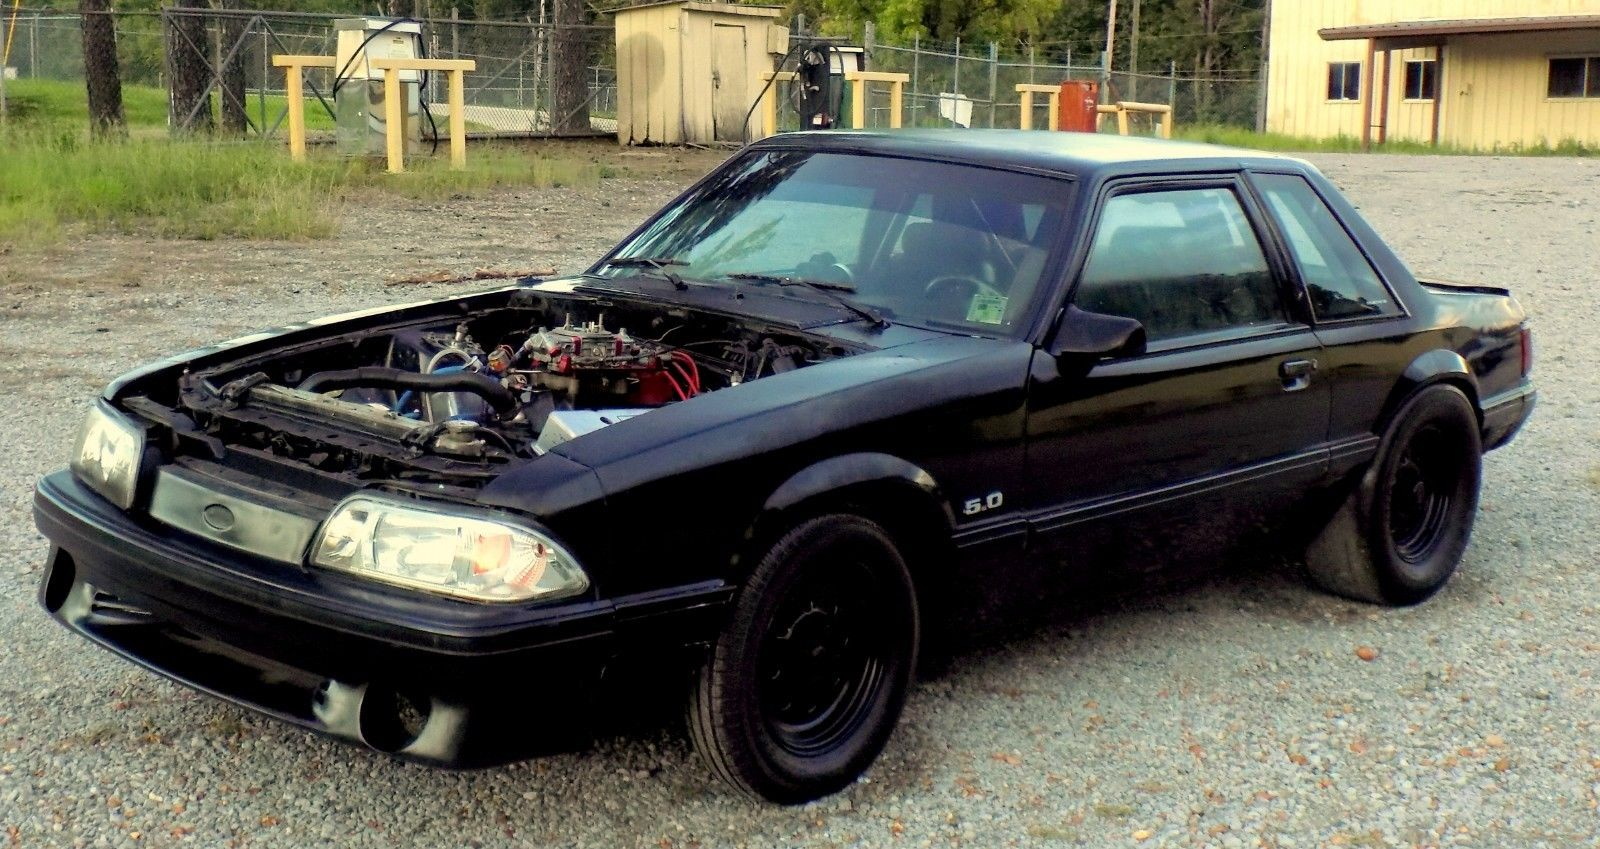 Amazing 1990 Ford Mustang Notchback Mustang Notchback Foxbody LX Fresh  Chevy 406 Engine Glide Race Drag Street Car 2018-2019